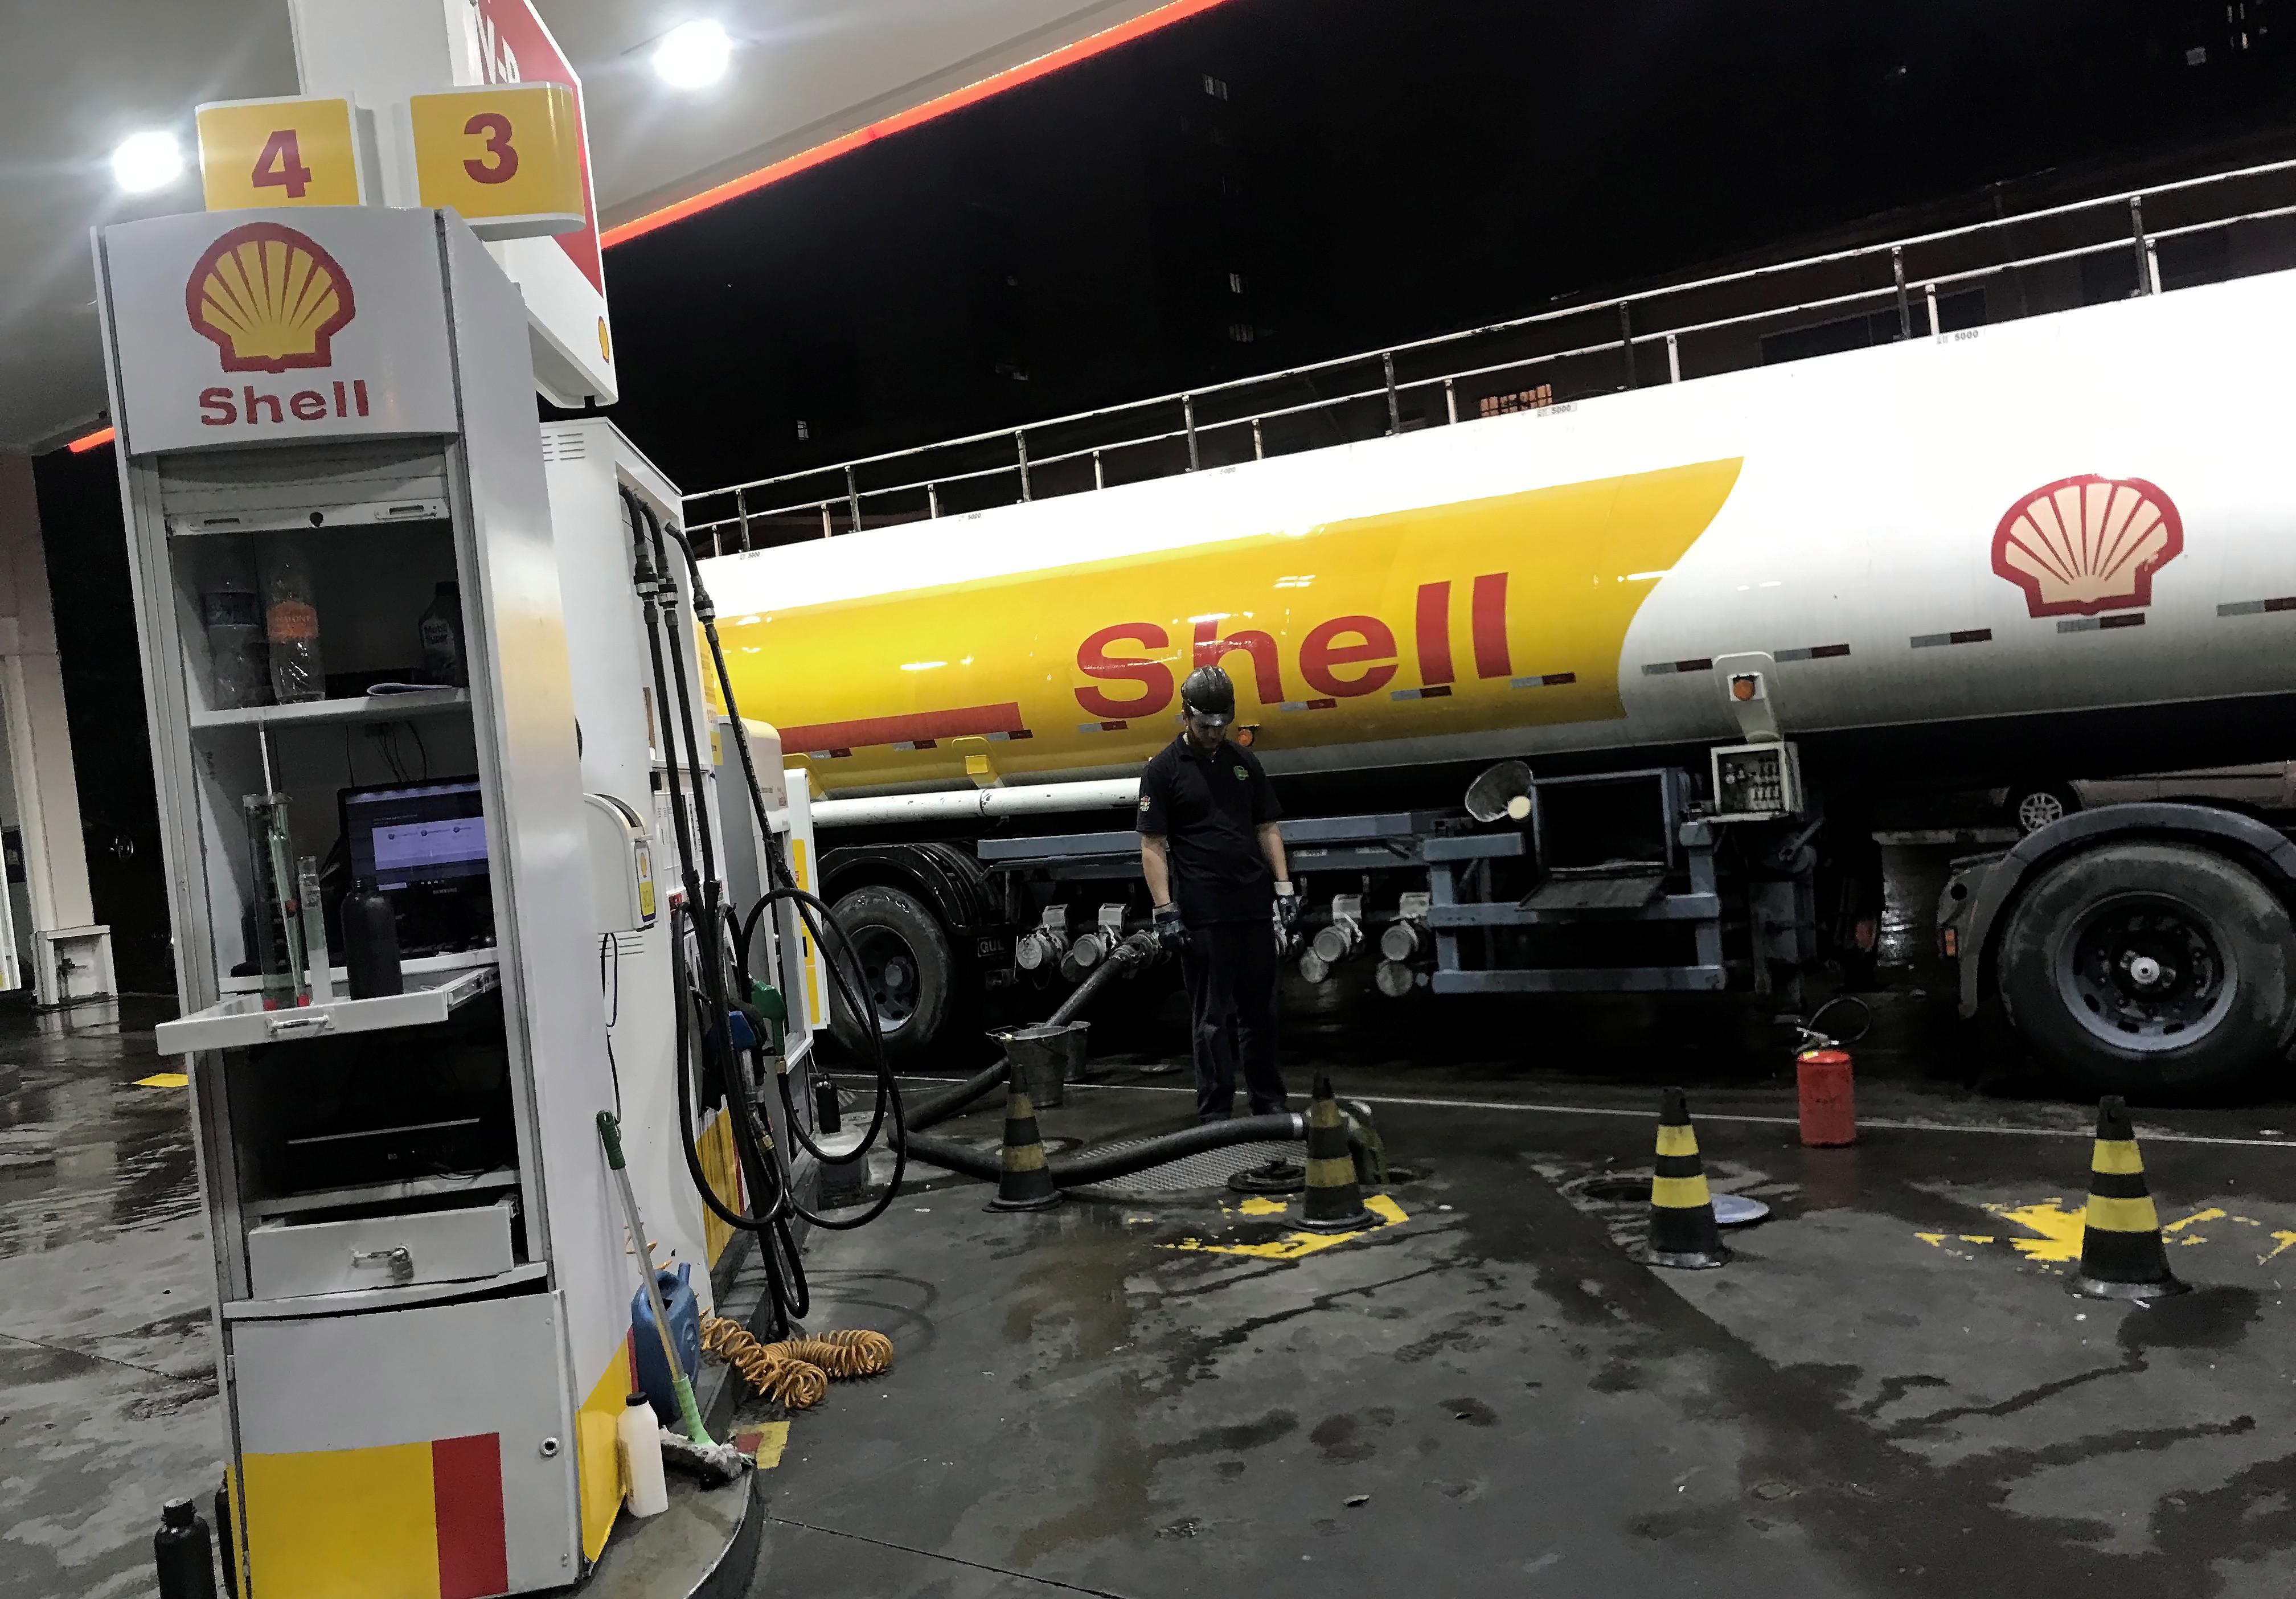 An oil tank truck fills the pumps at a Shell petrol station in Sao Paulo, Brazil, May 31, 2019. Picture taken May 31, 2019. REUTERS/Nacho Doce - RC17492B2550